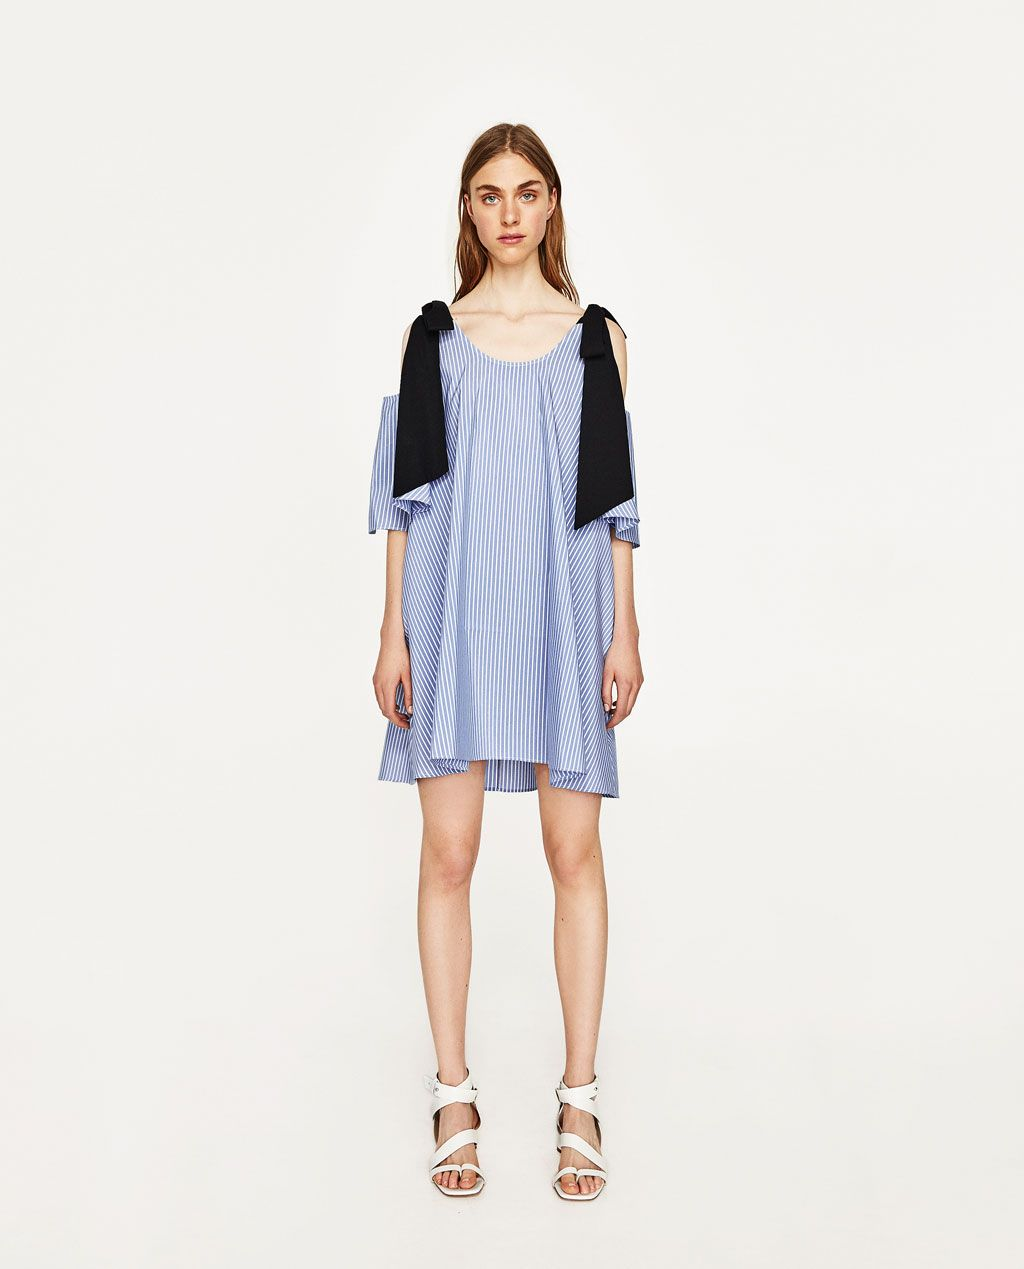 zara - woman - poplin dress with bow at the back | modestil